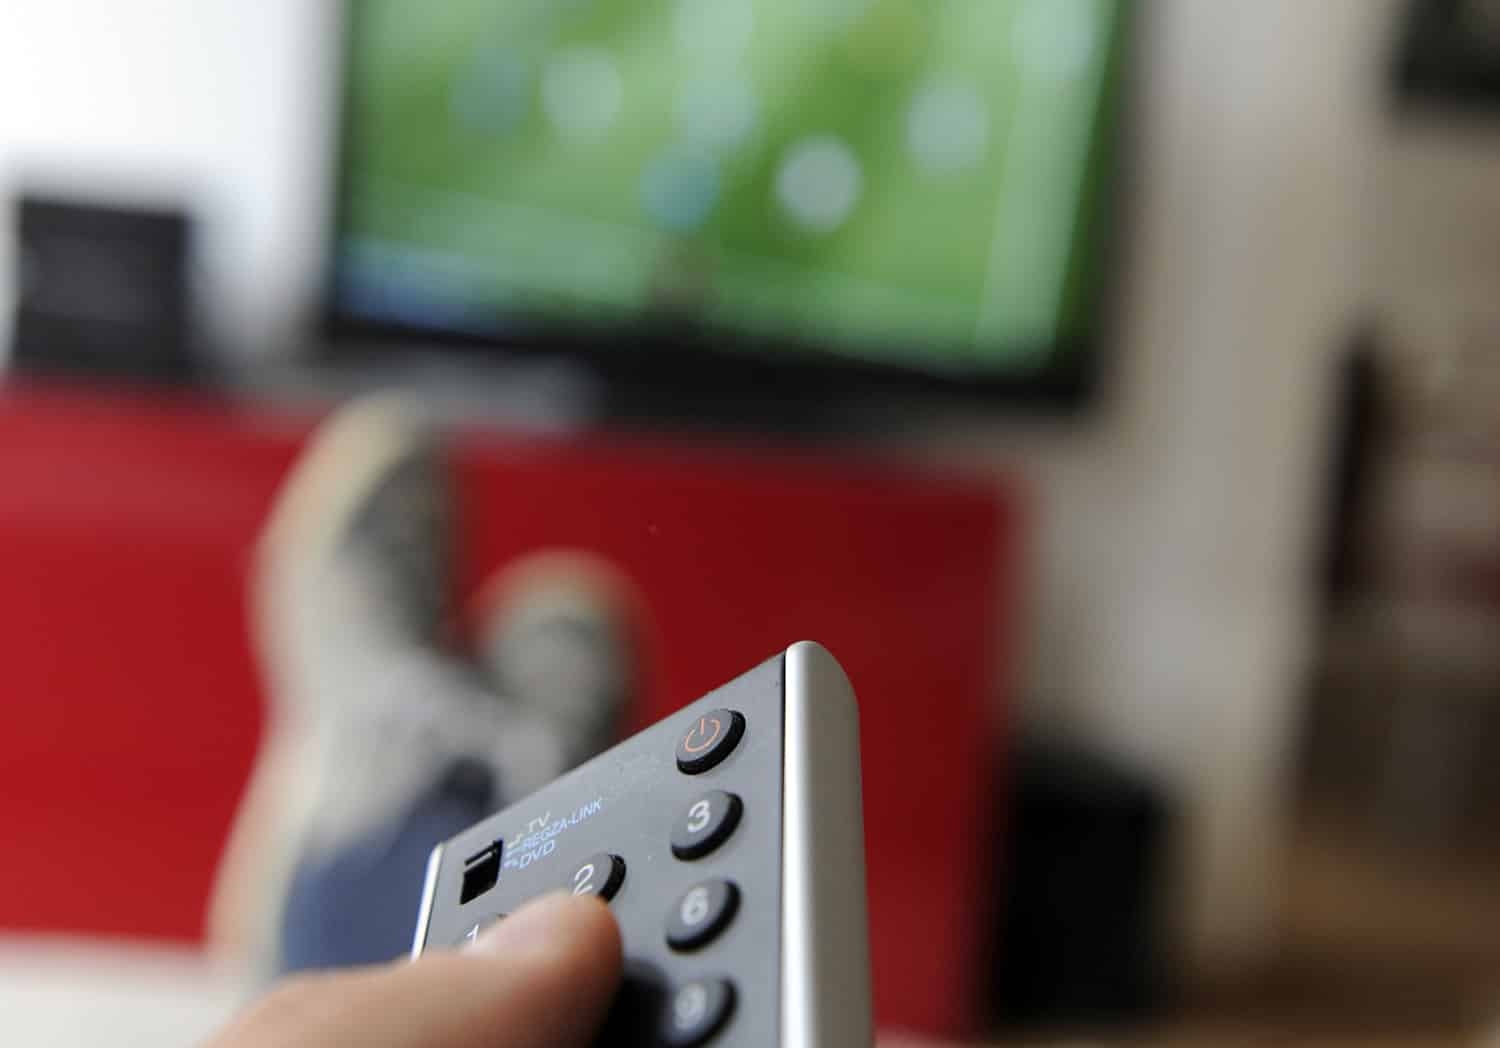 Shockingly, Congress passed a law banning one of the cable industry's most despised practices